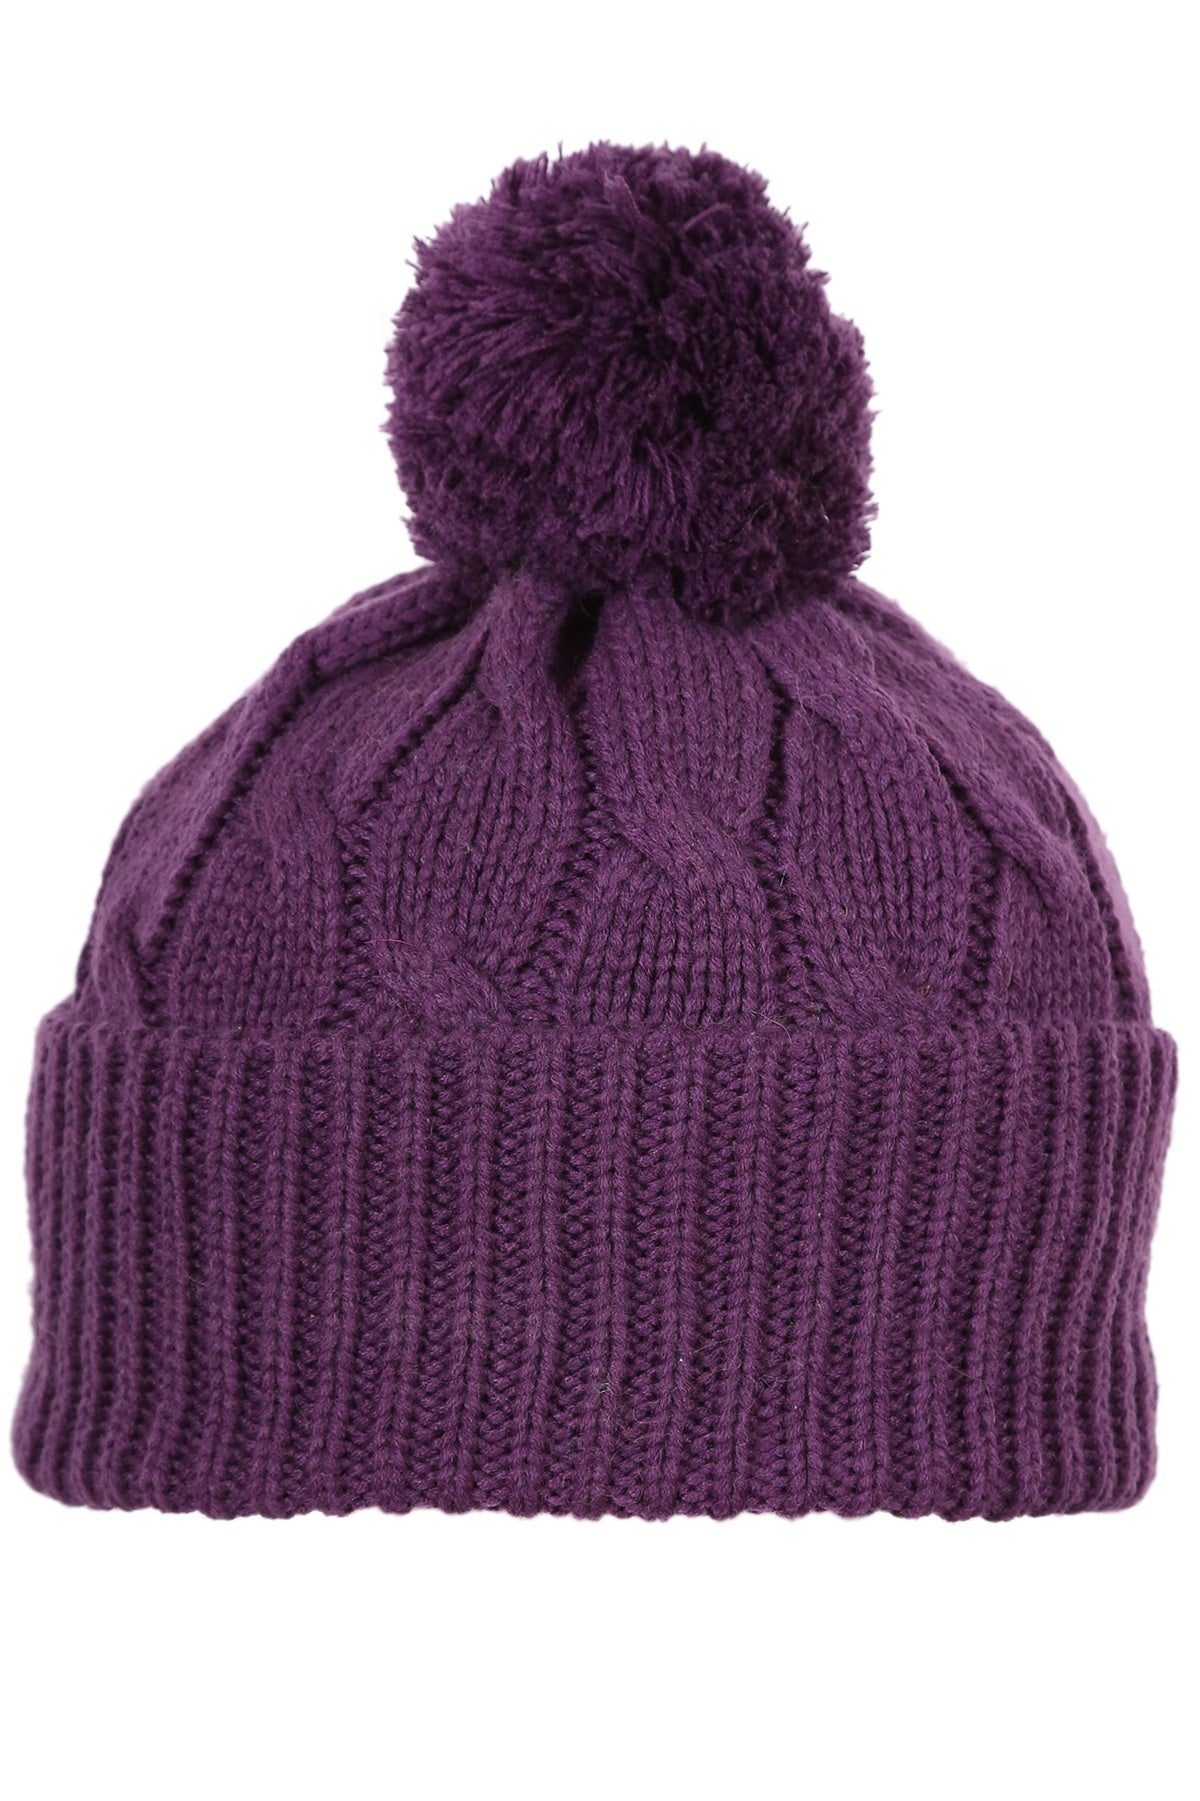 Woolly Beanie Cable Knit Purple